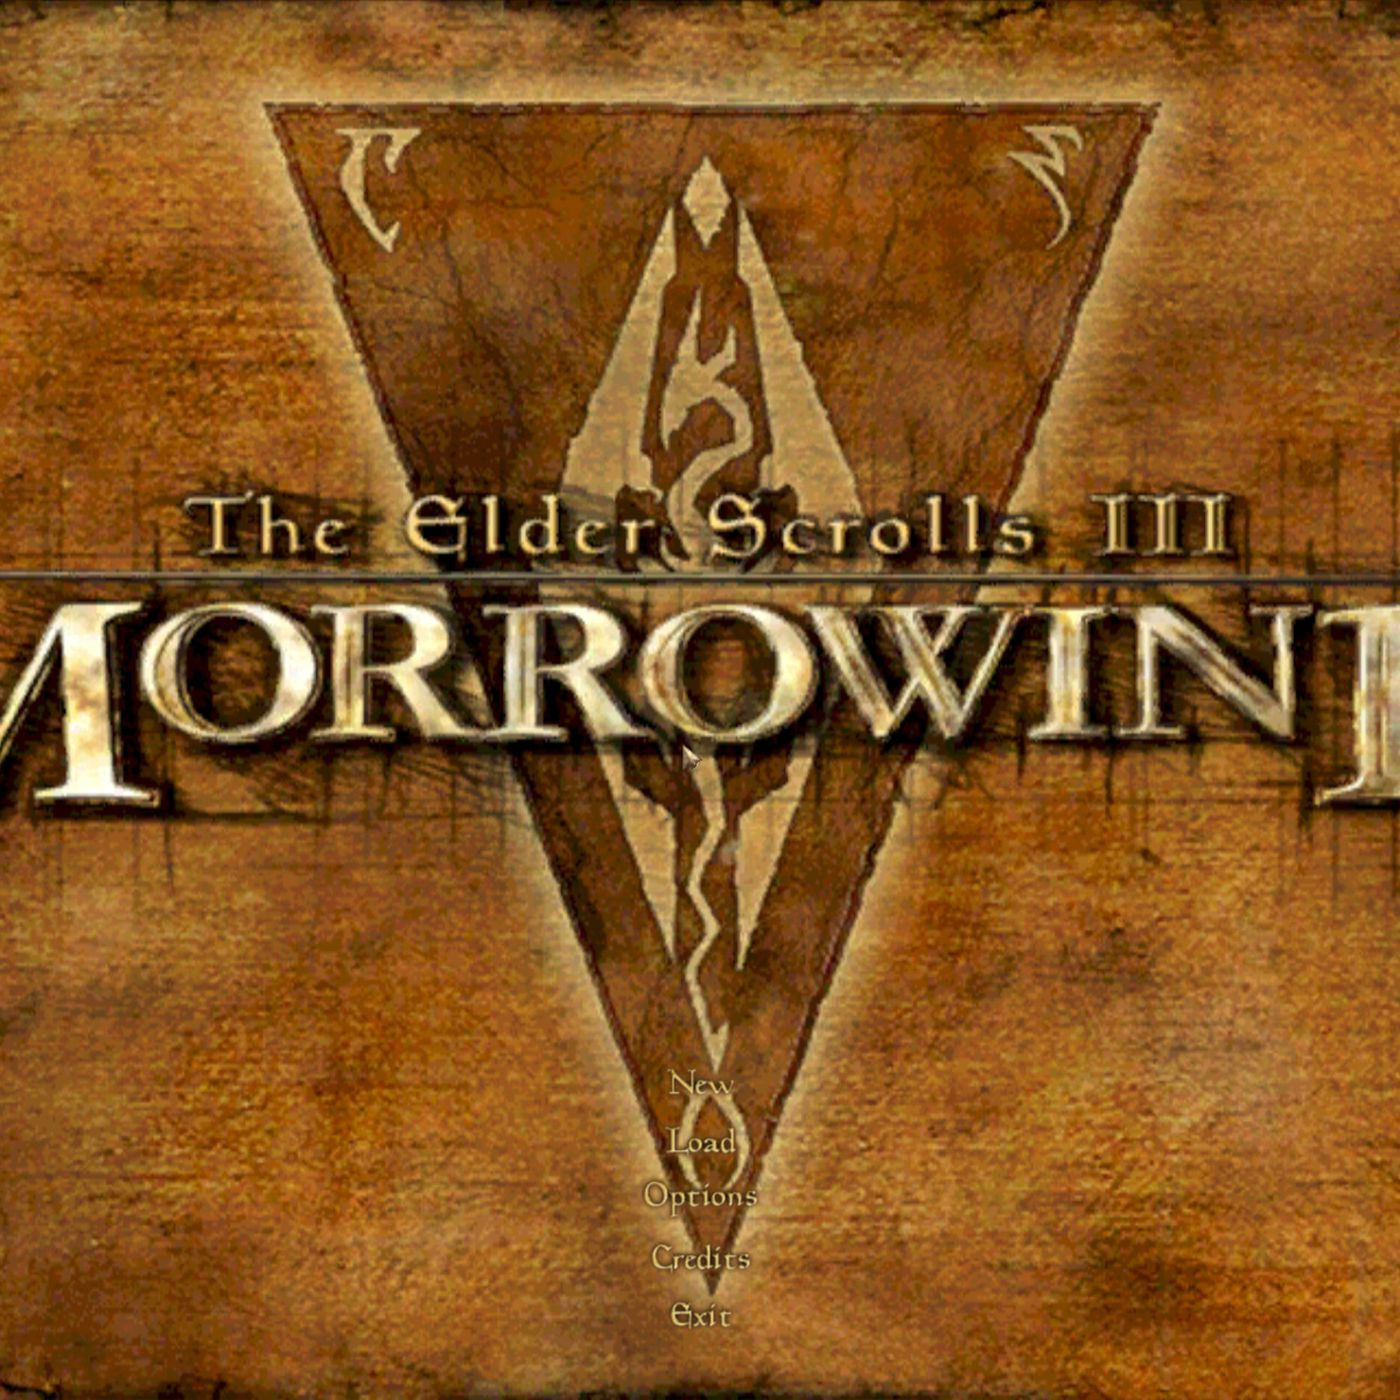 Morrowind is free until March 31 for The Elder Scrolls' 25th